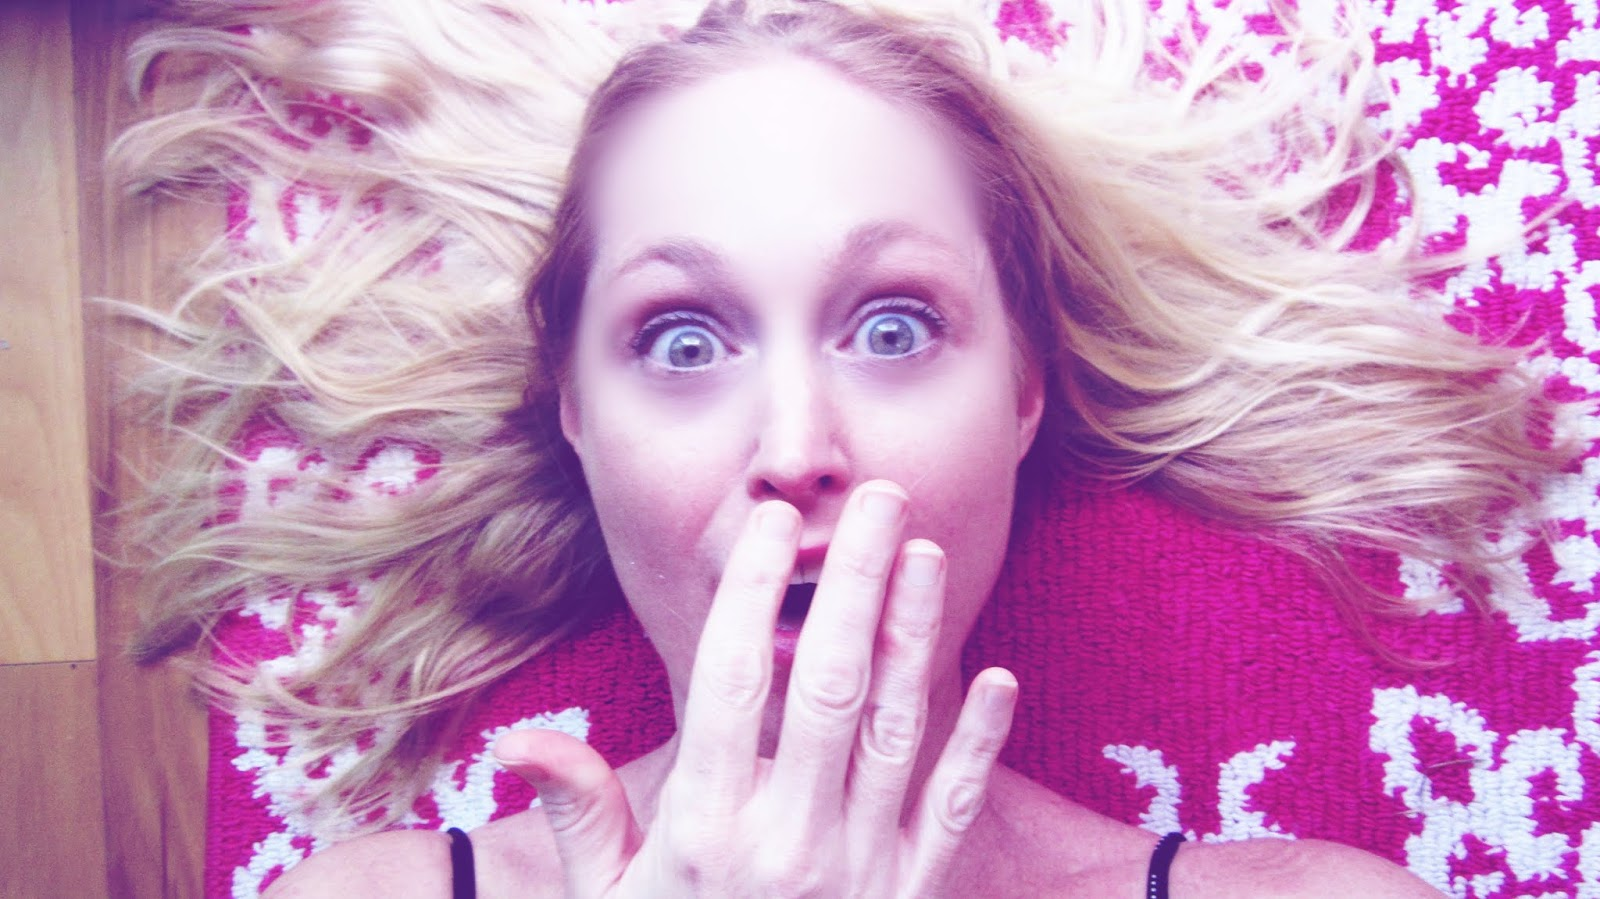 Woman With Blonde Hair on Pink Rug With a Surprised Look